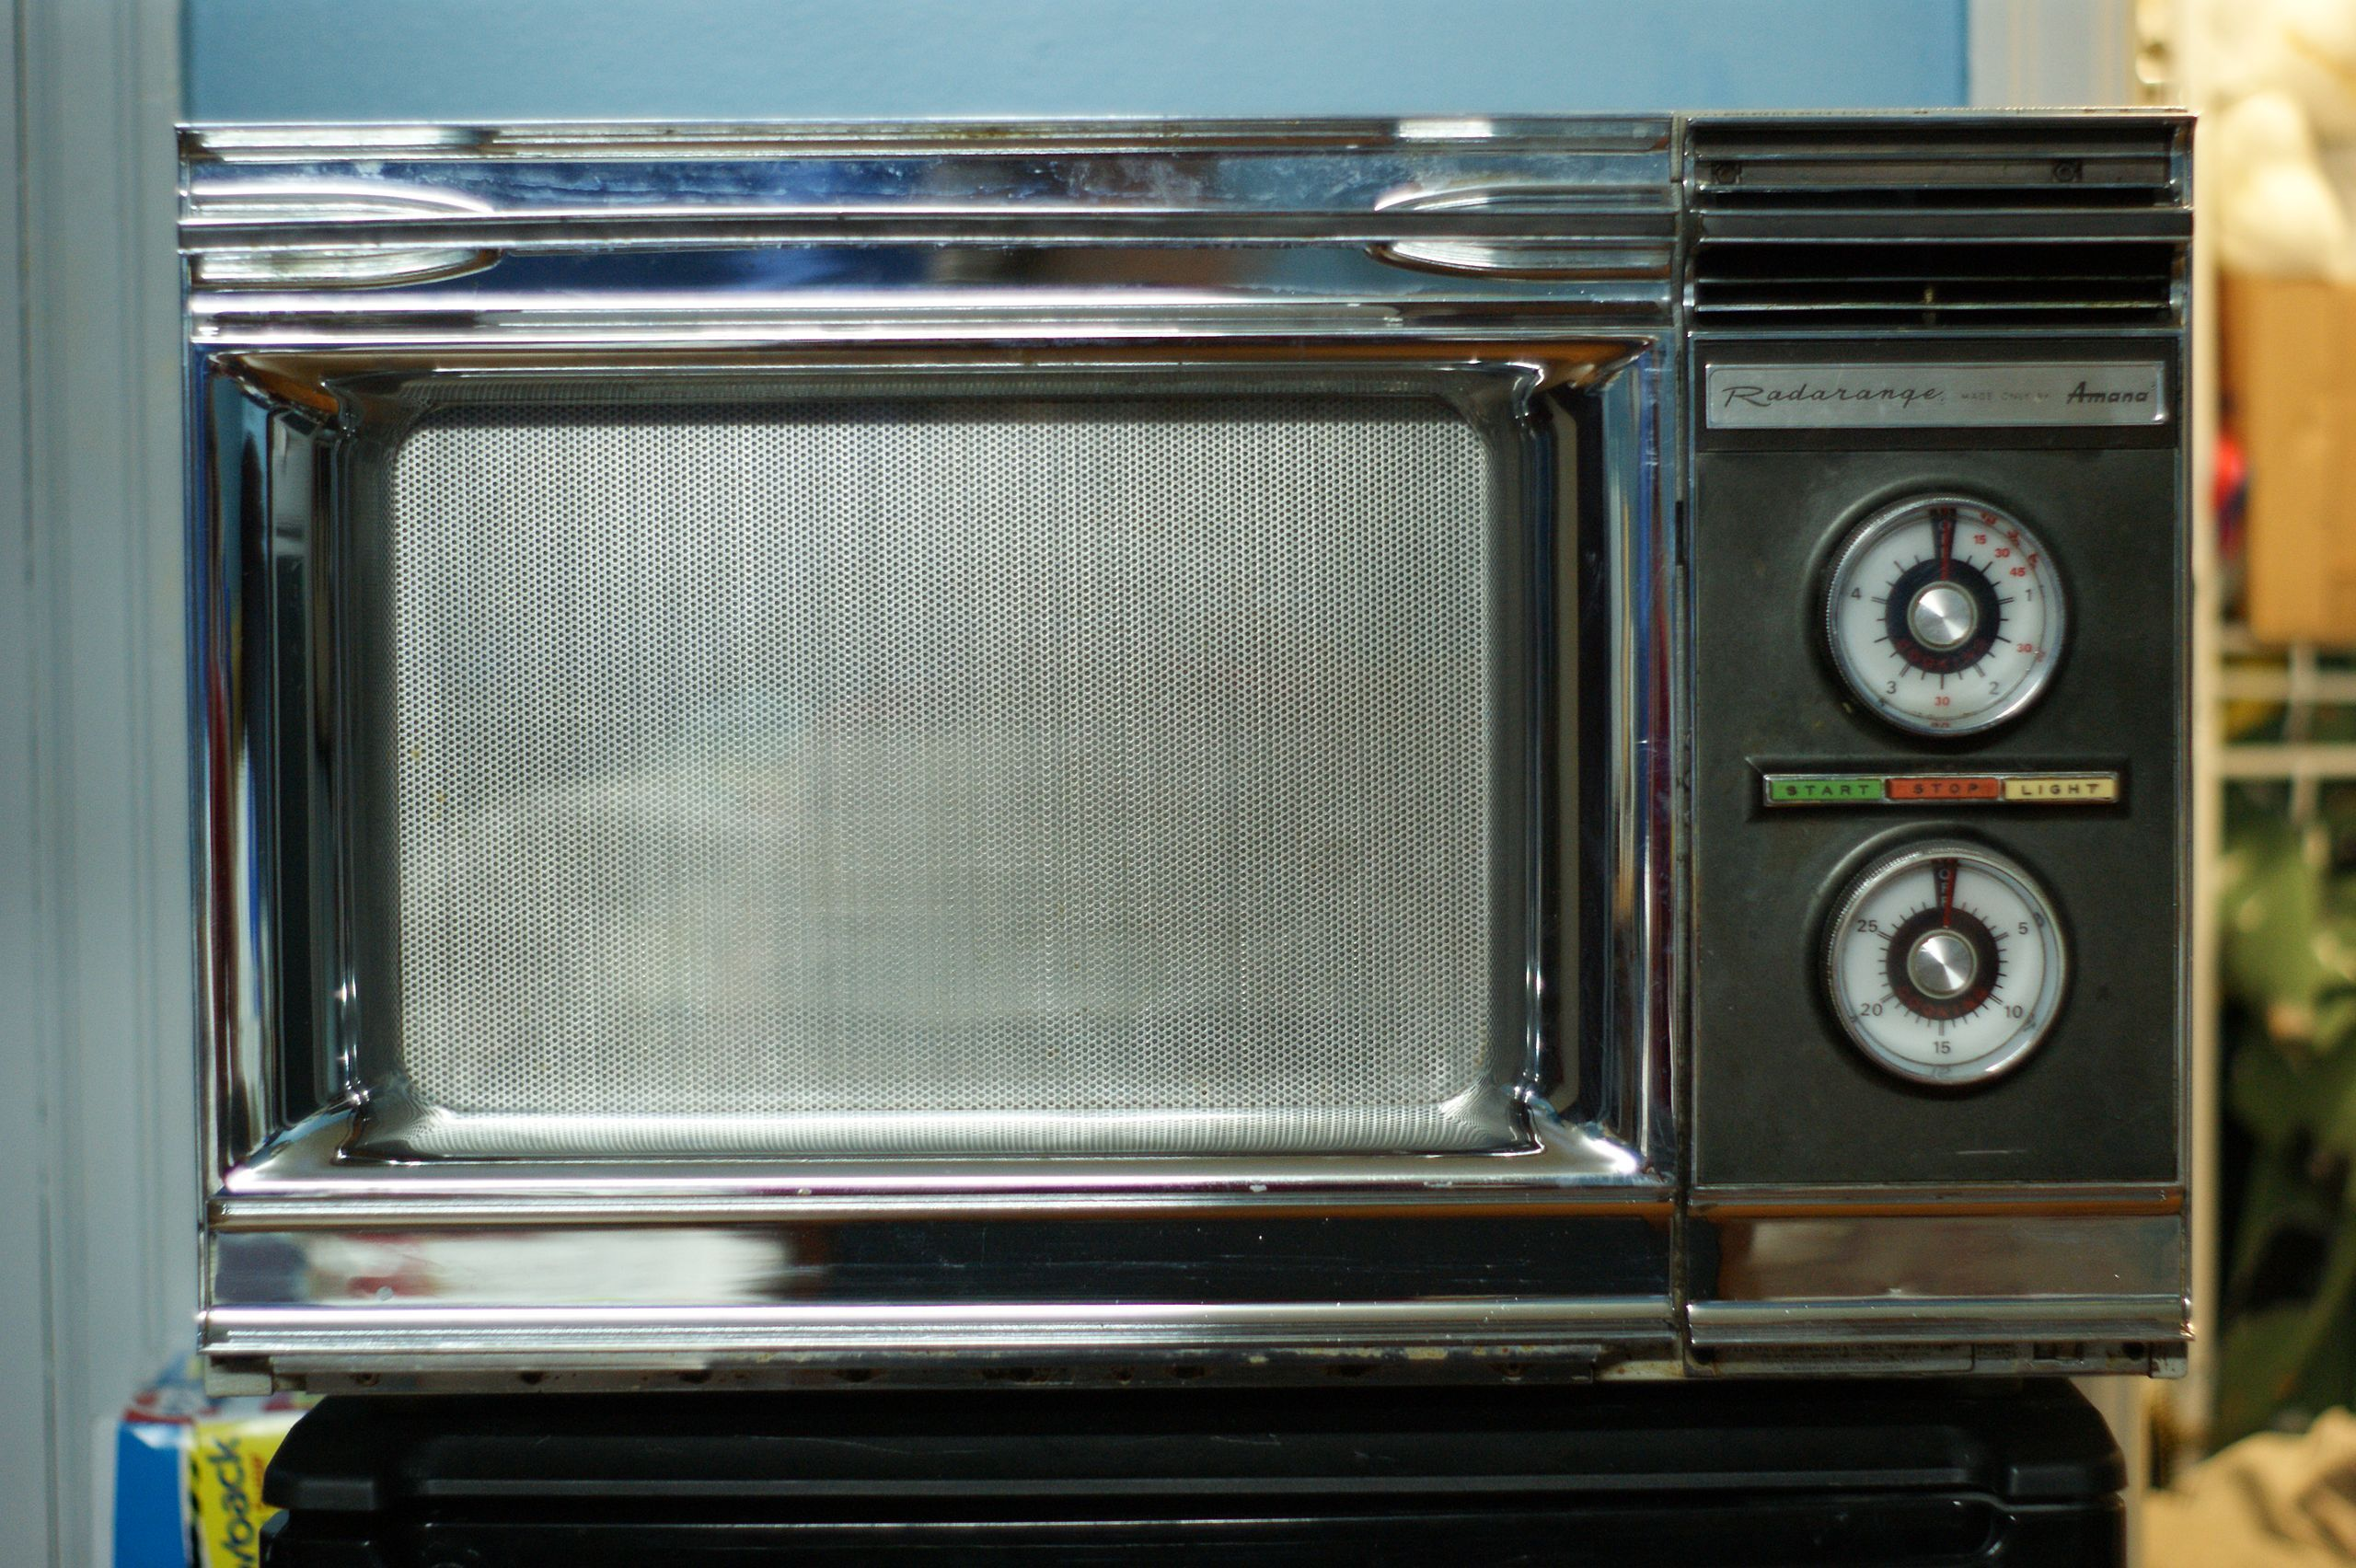 1971 Radar Range Rr 4 By The Late 1970s Technological Advances Led To Rapidly Falling Prices Often Called Electronic Ovens I Microwave Oven Oven Microwave